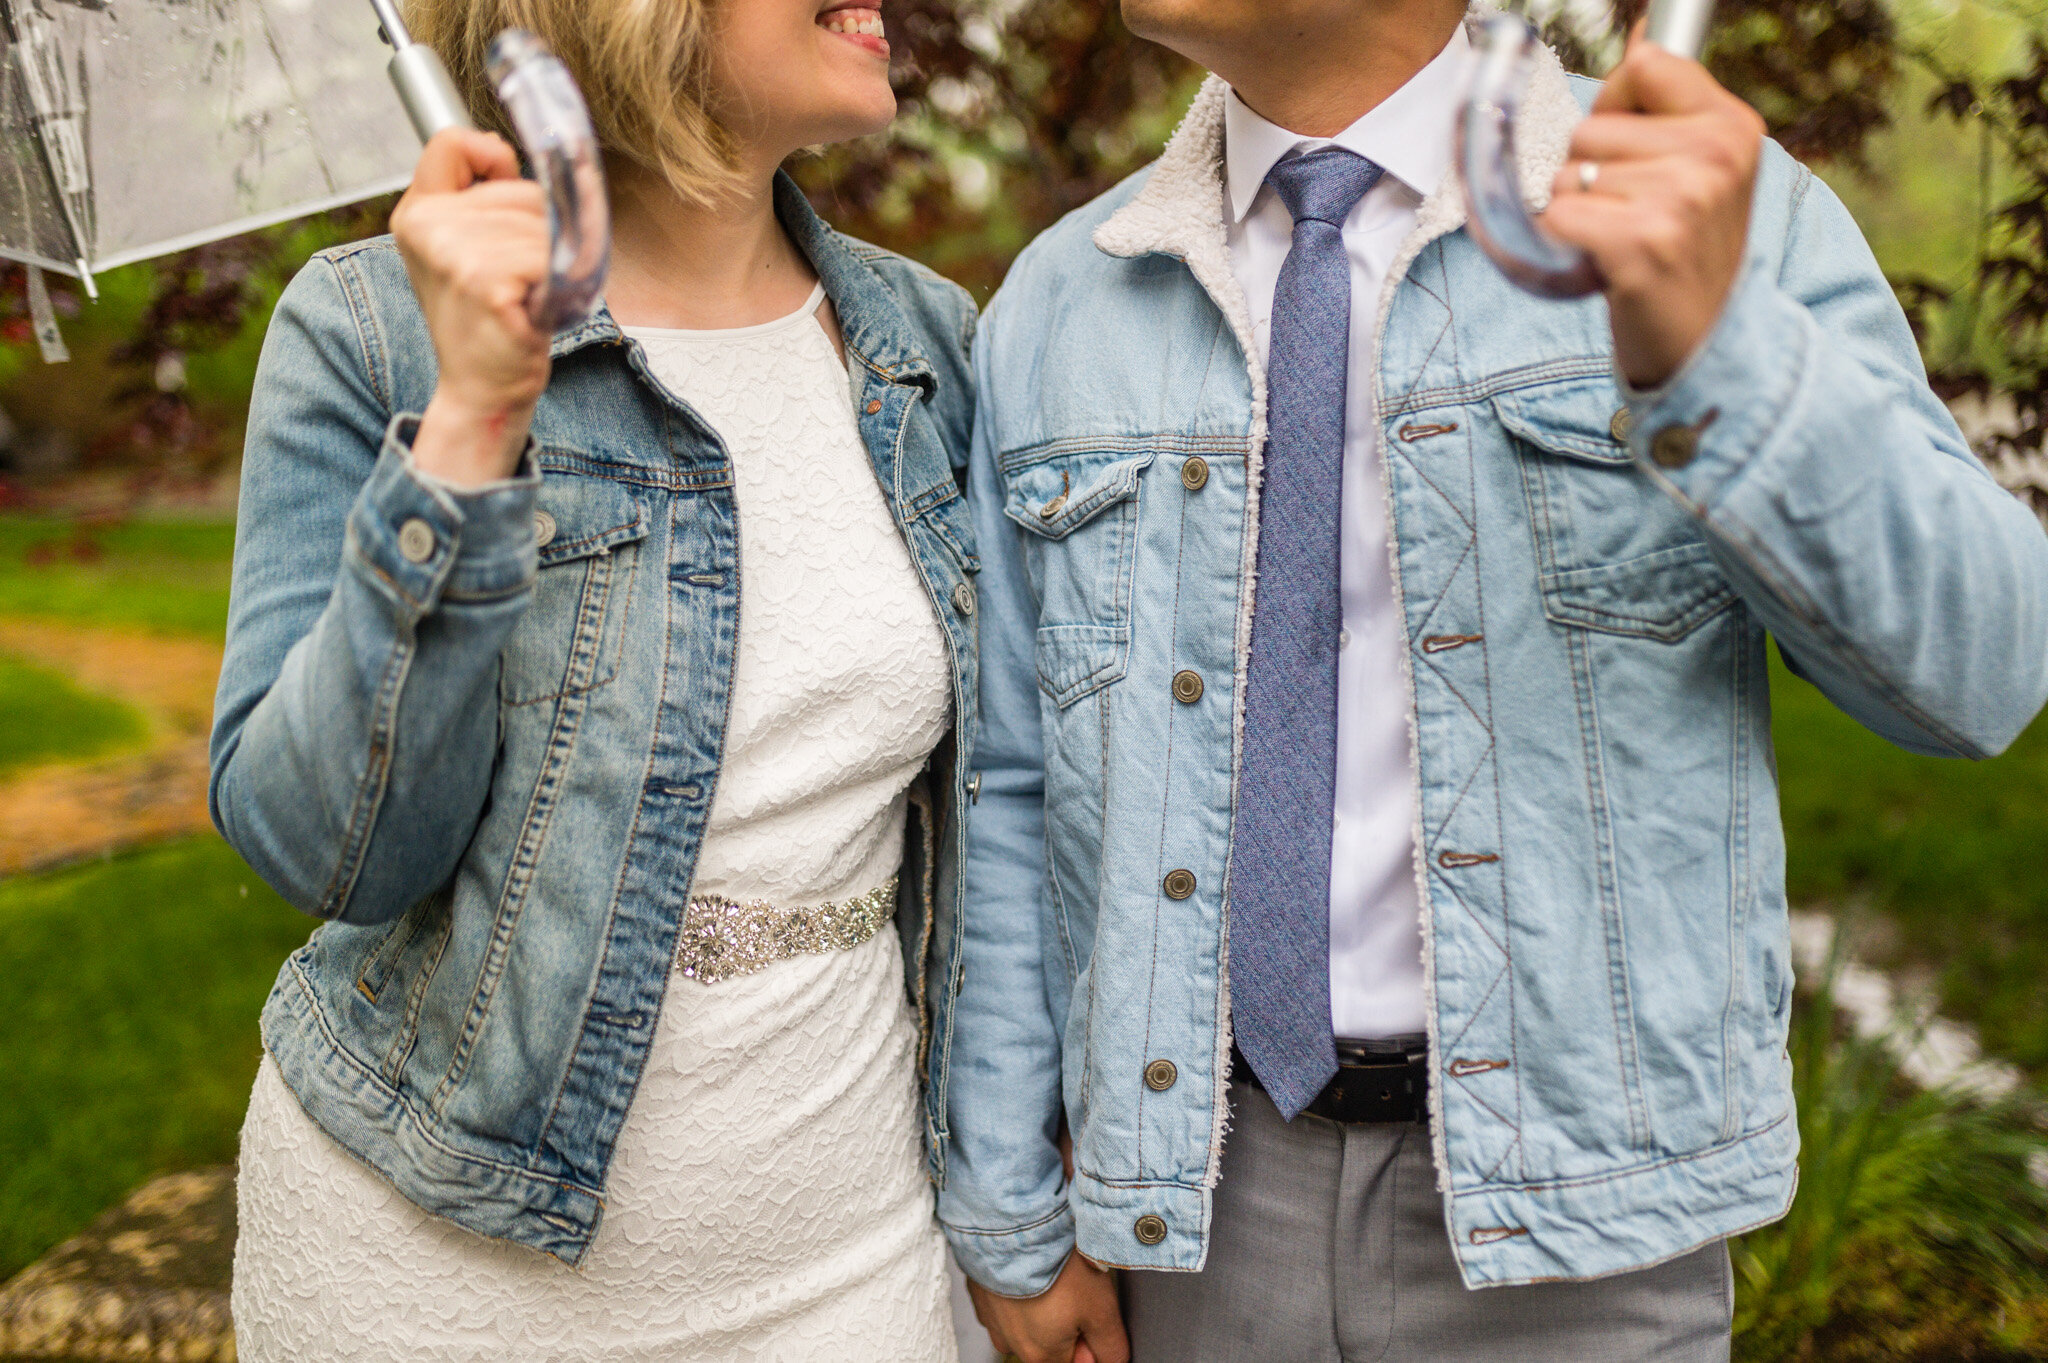 Wedding formals and denim jackets